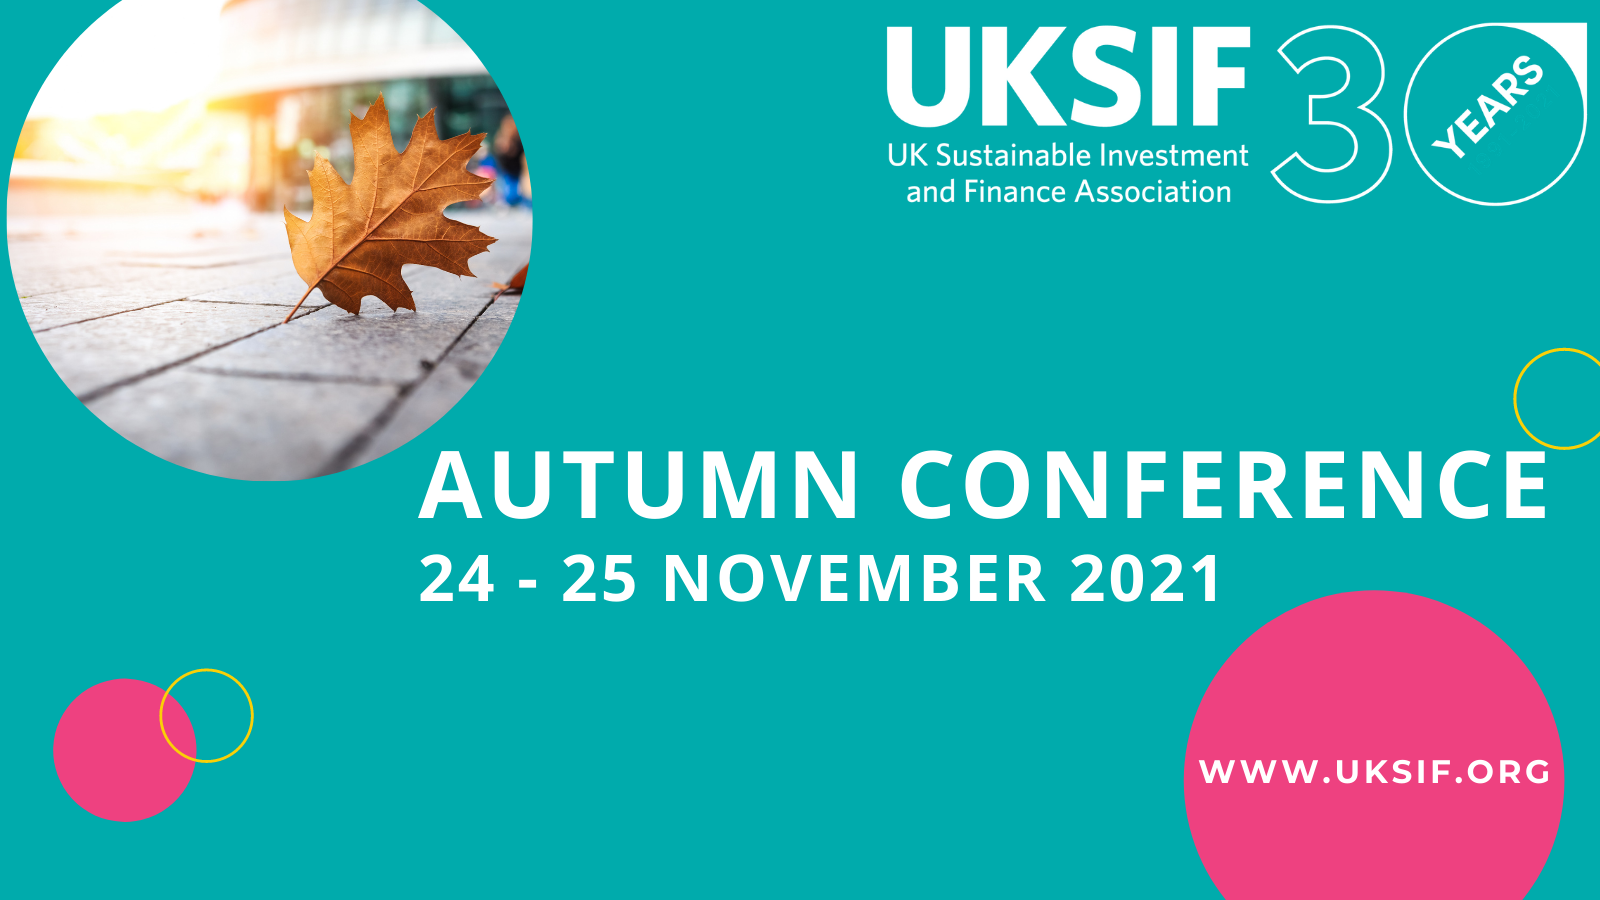 Autumn Conference 2021 - Preview Image